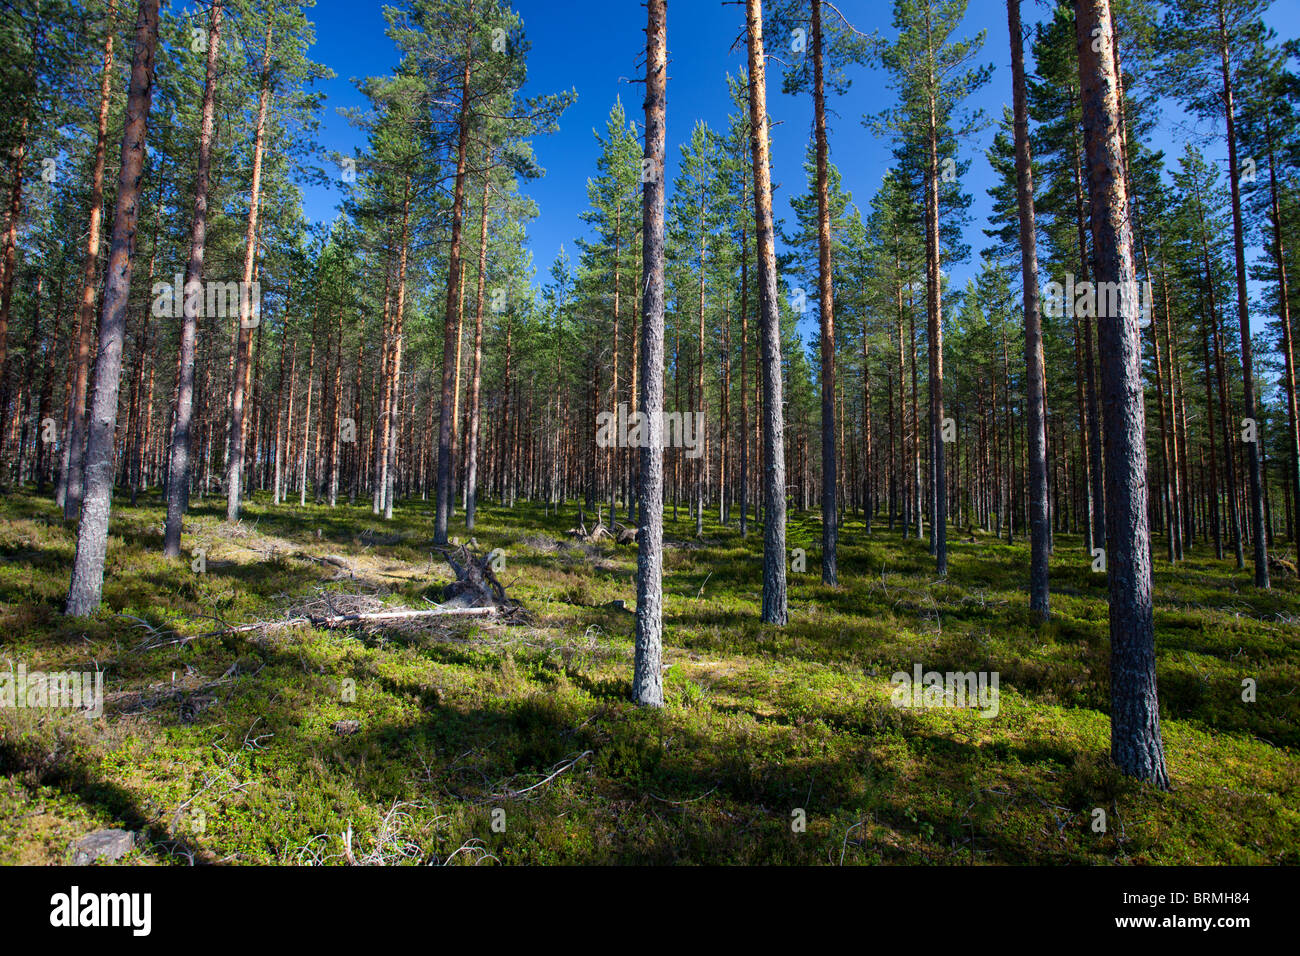 Young pine ( Pinus sylvestris ) forest growing at dry heathland , Finland - Stock Image